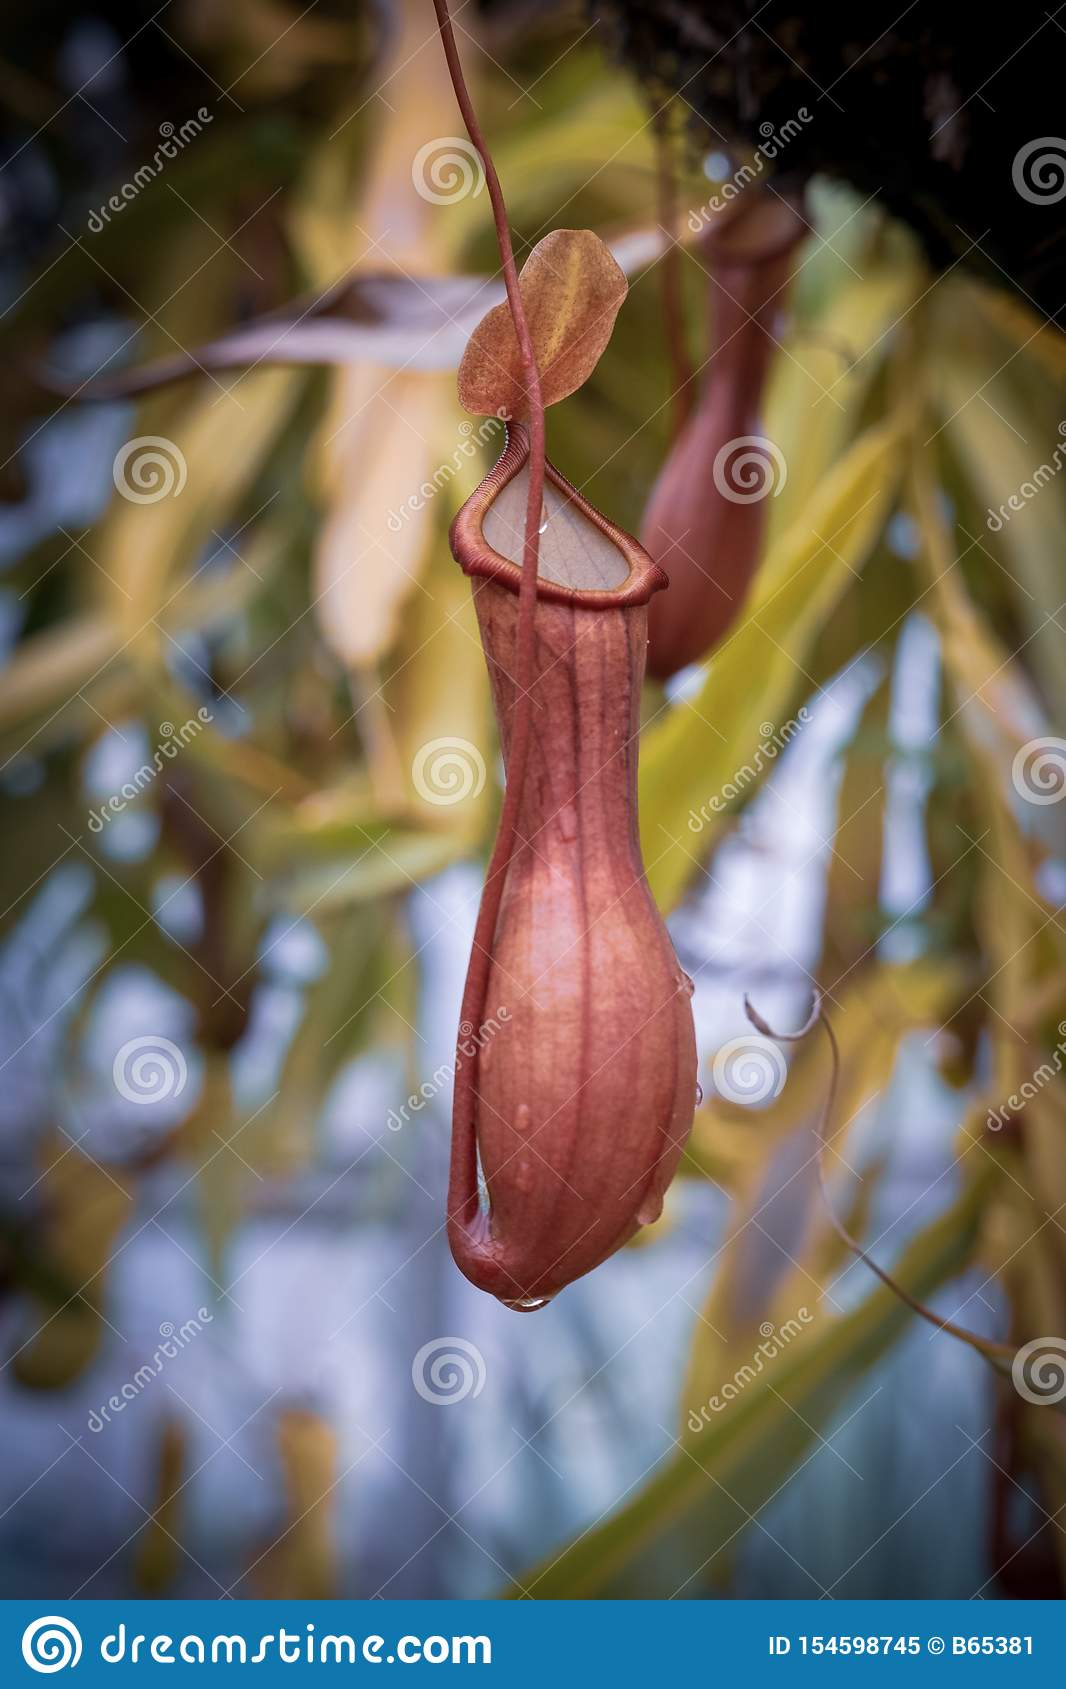 El Nepenthes, come la flor del insecto